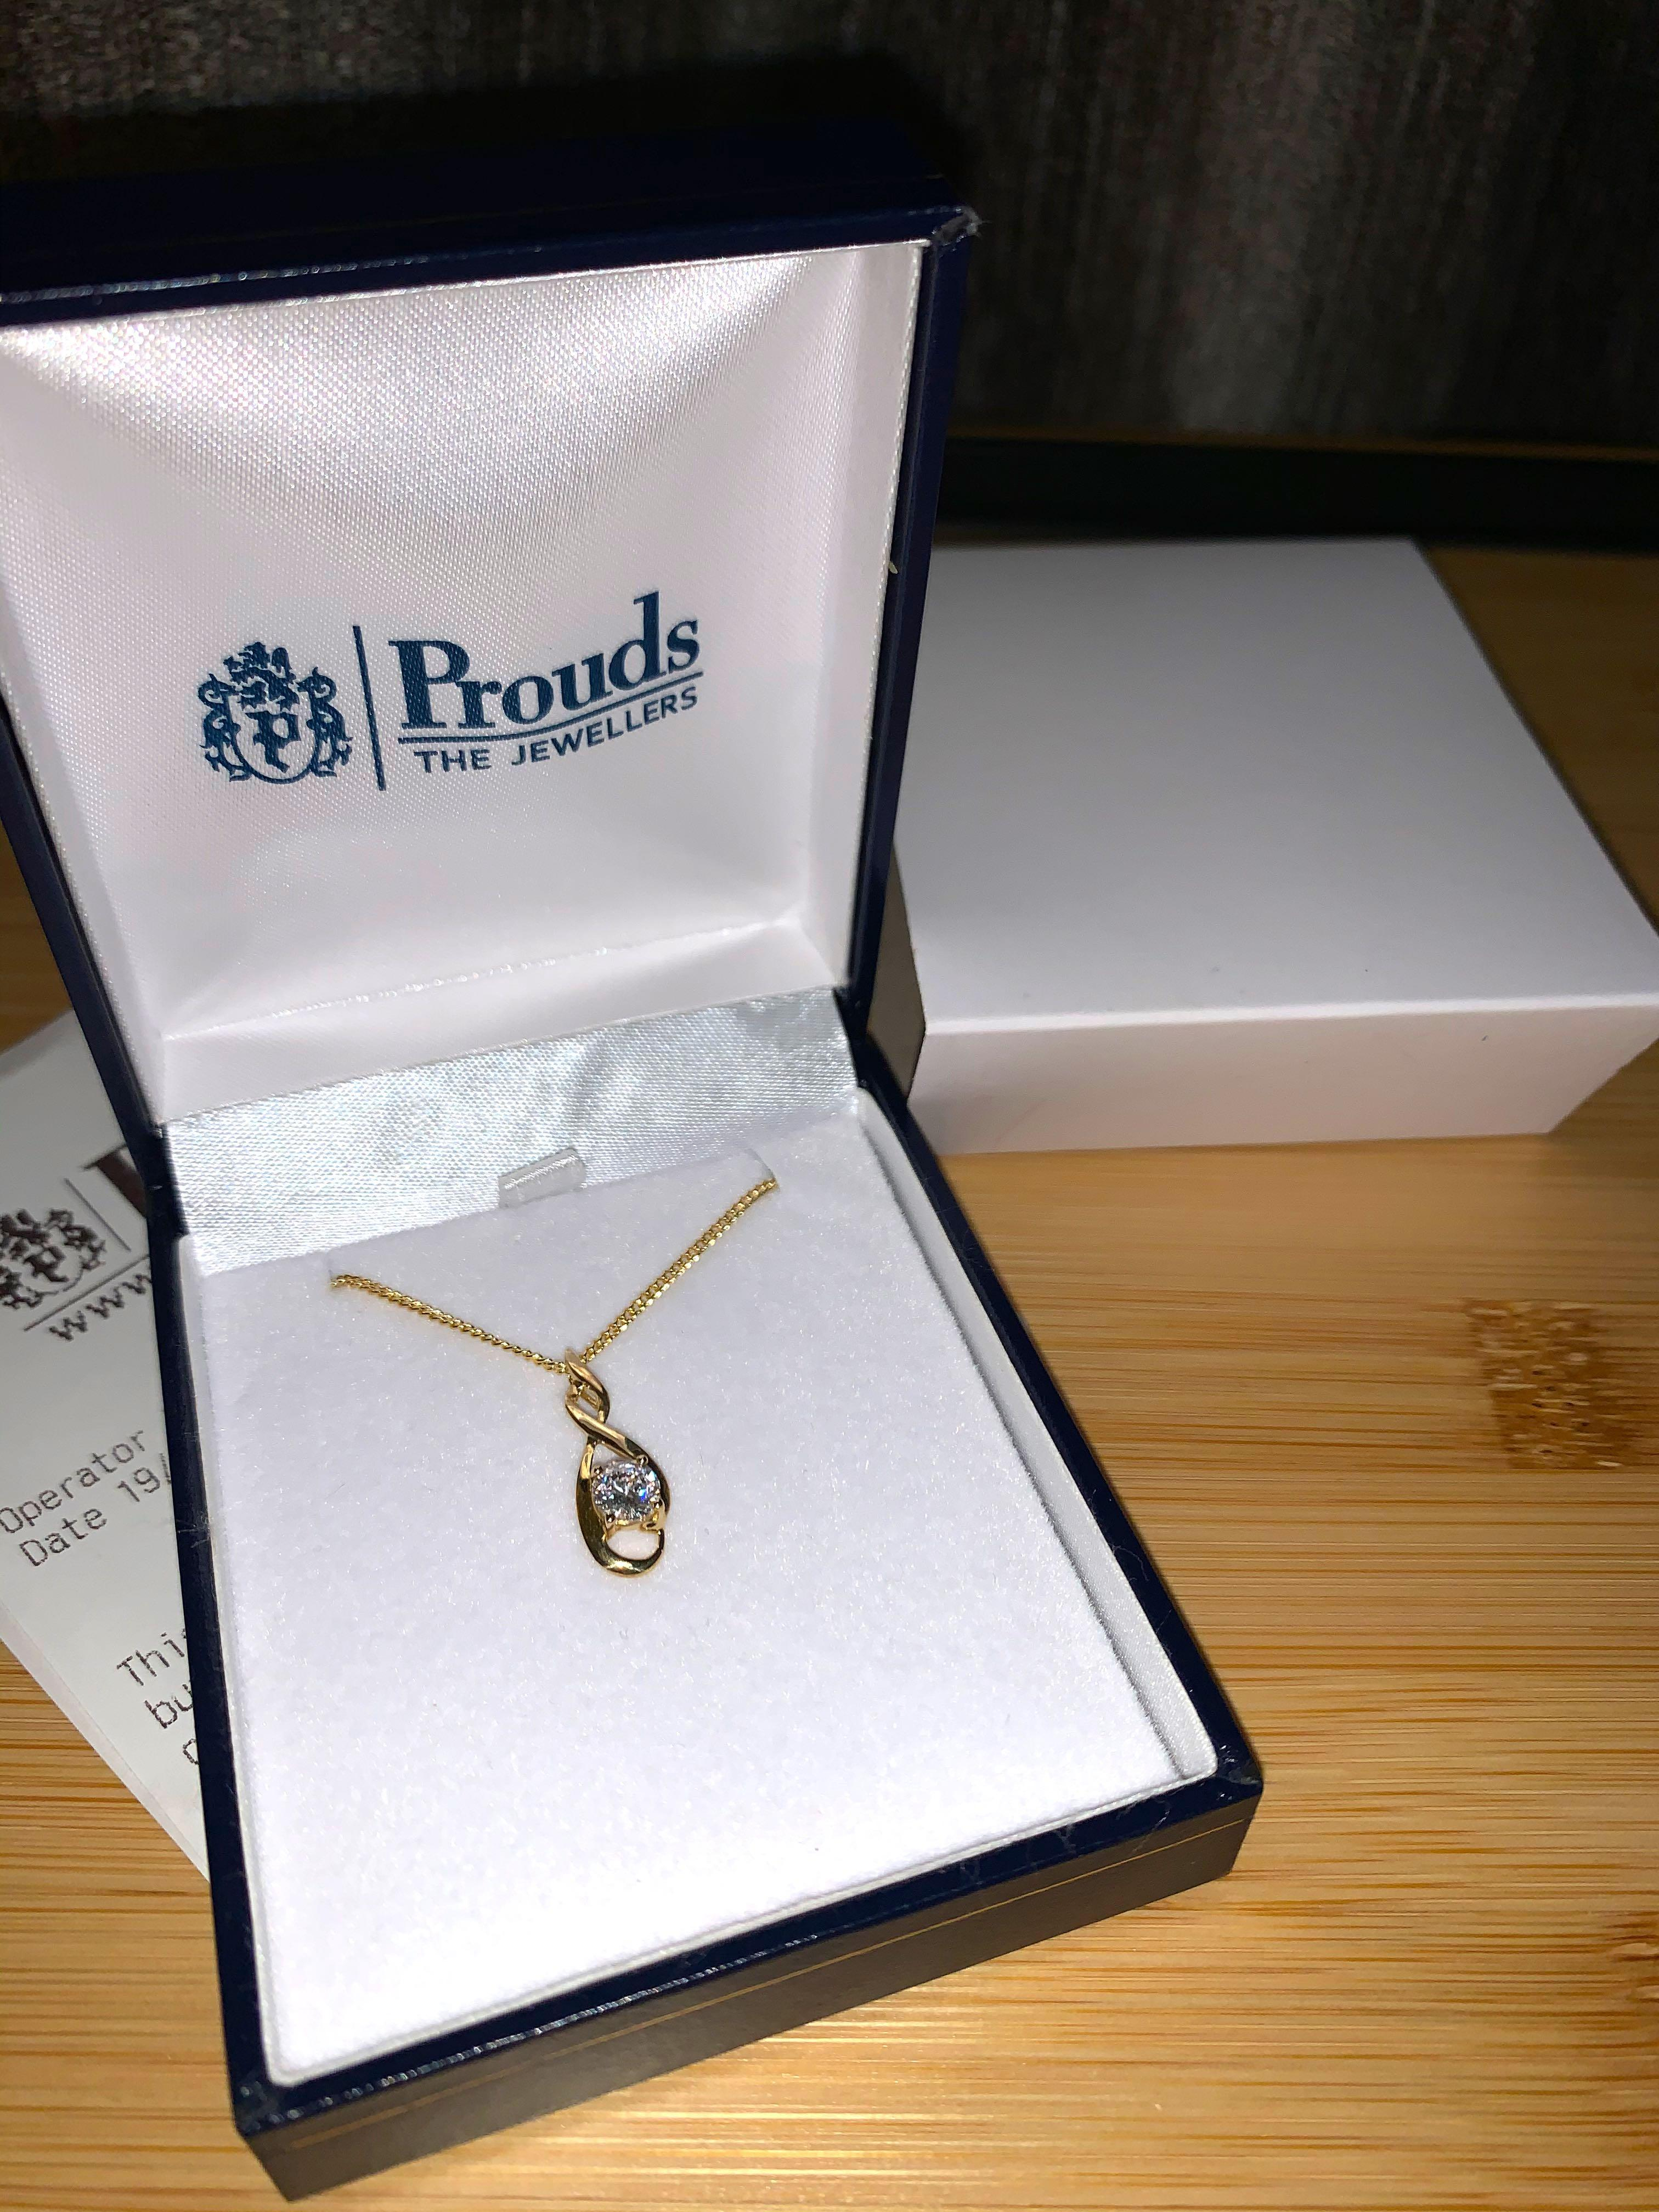 Prouds 9ct gold cubic zirconia 5mm round brilliant cut open twist pendant with the chain